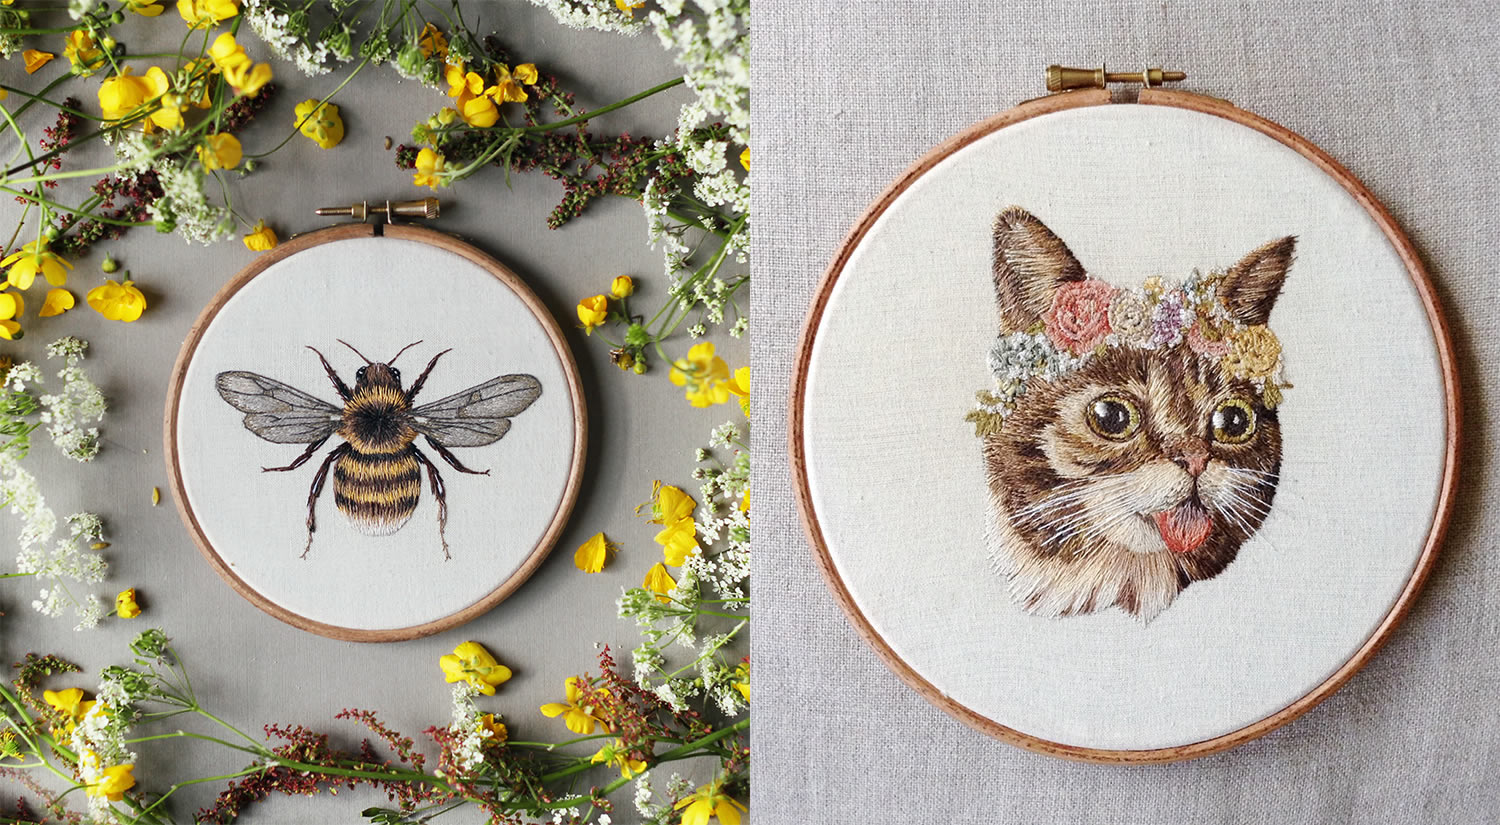 bumblebee and cat embroidery by Emillie Ferris